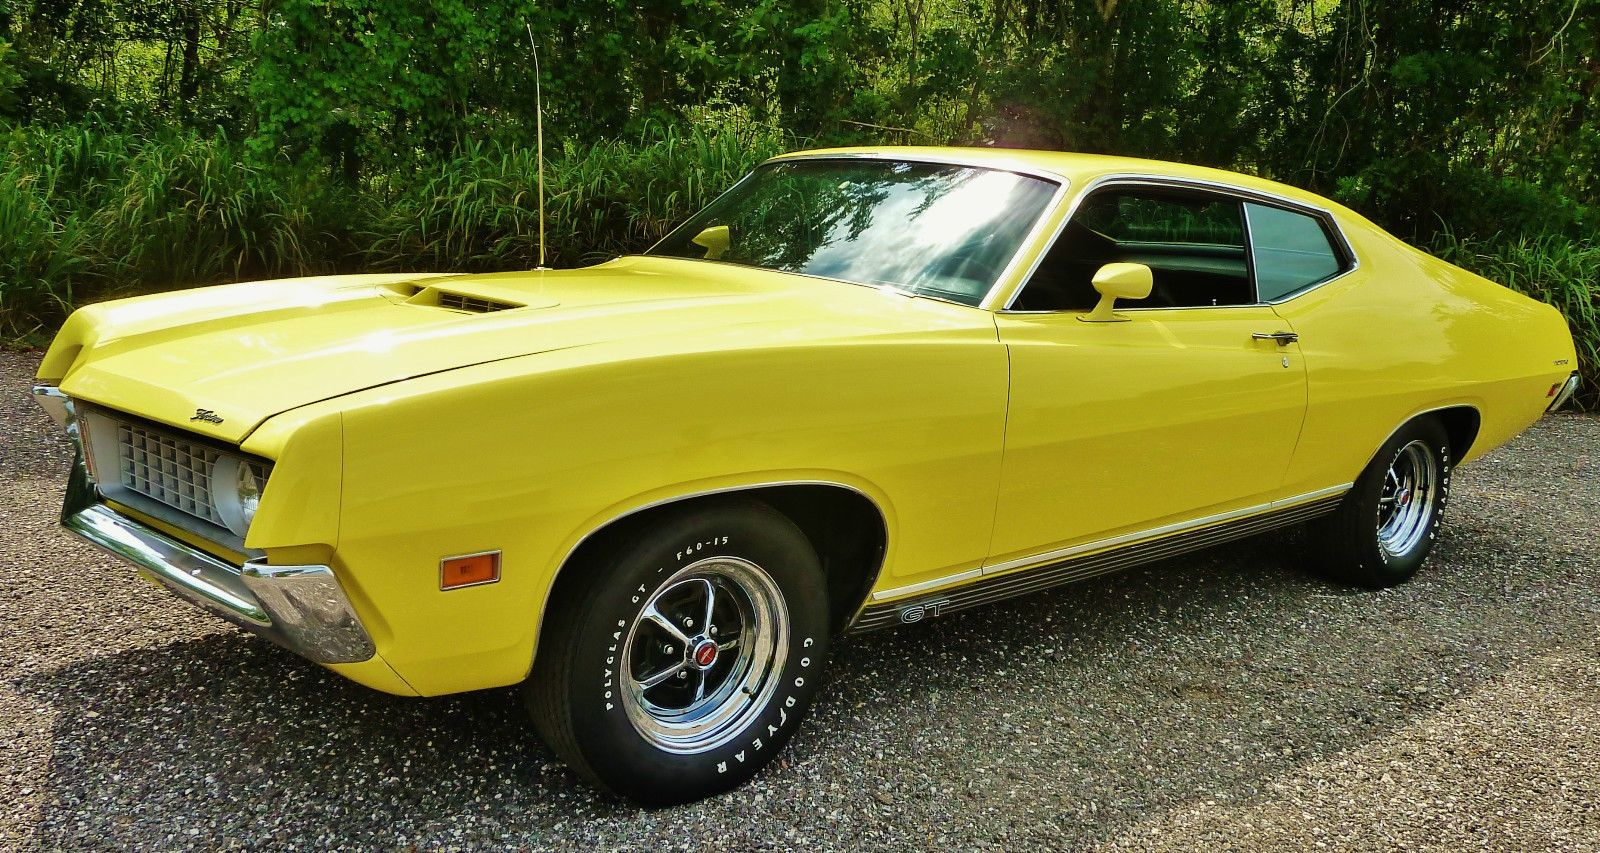 Screaming Yellow Zonker 1971 Ford Torino Gt Ford Torino Classic Cars Classic Cars Muscle